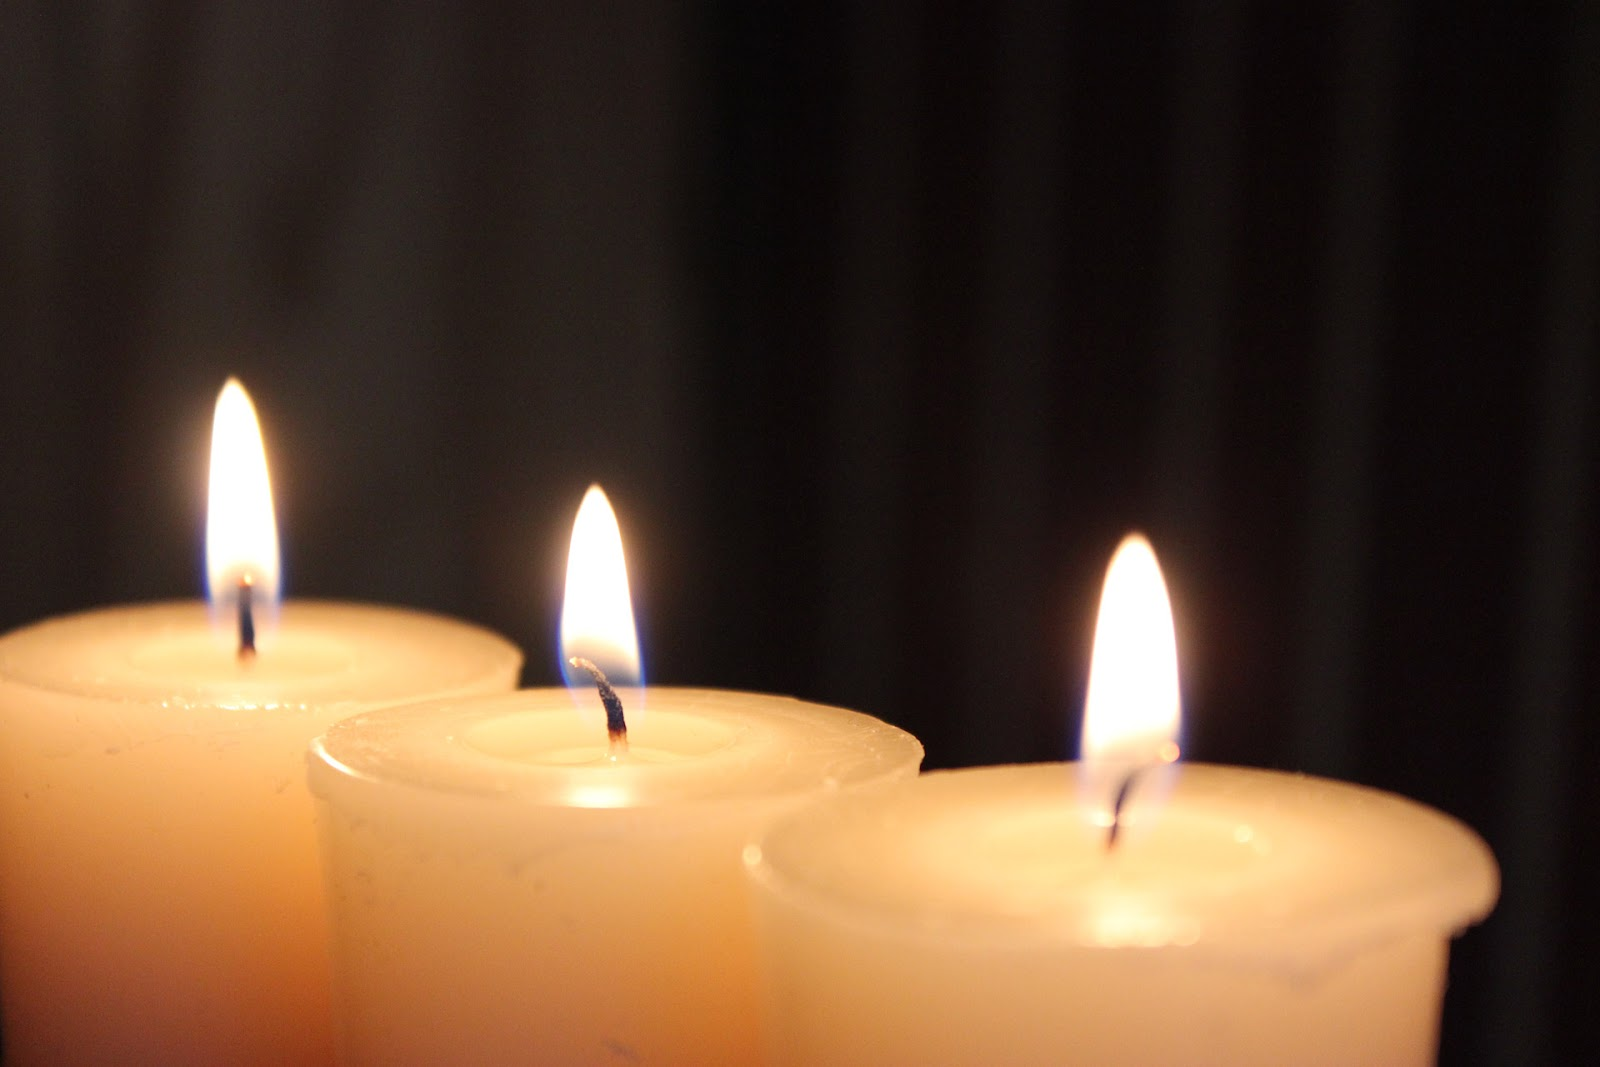 3-candles-burning-3.jpg